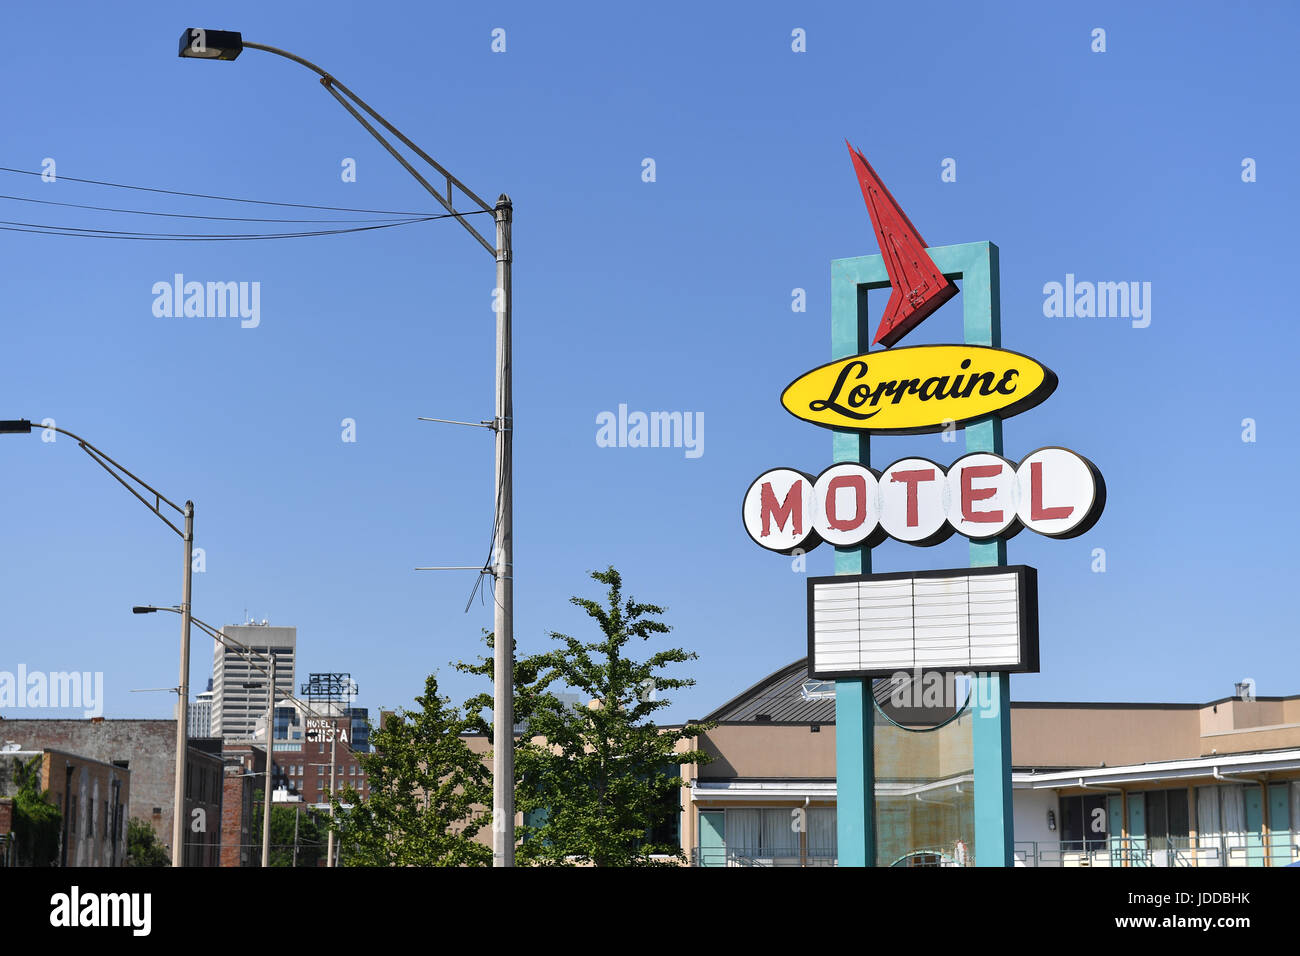 Memphis, TN, USA - June 9, 2017: The Lorraine Motel and site of the National Civil Rights Museum where Dr. Martin Luther King Jr. was assassinated Stock Photo